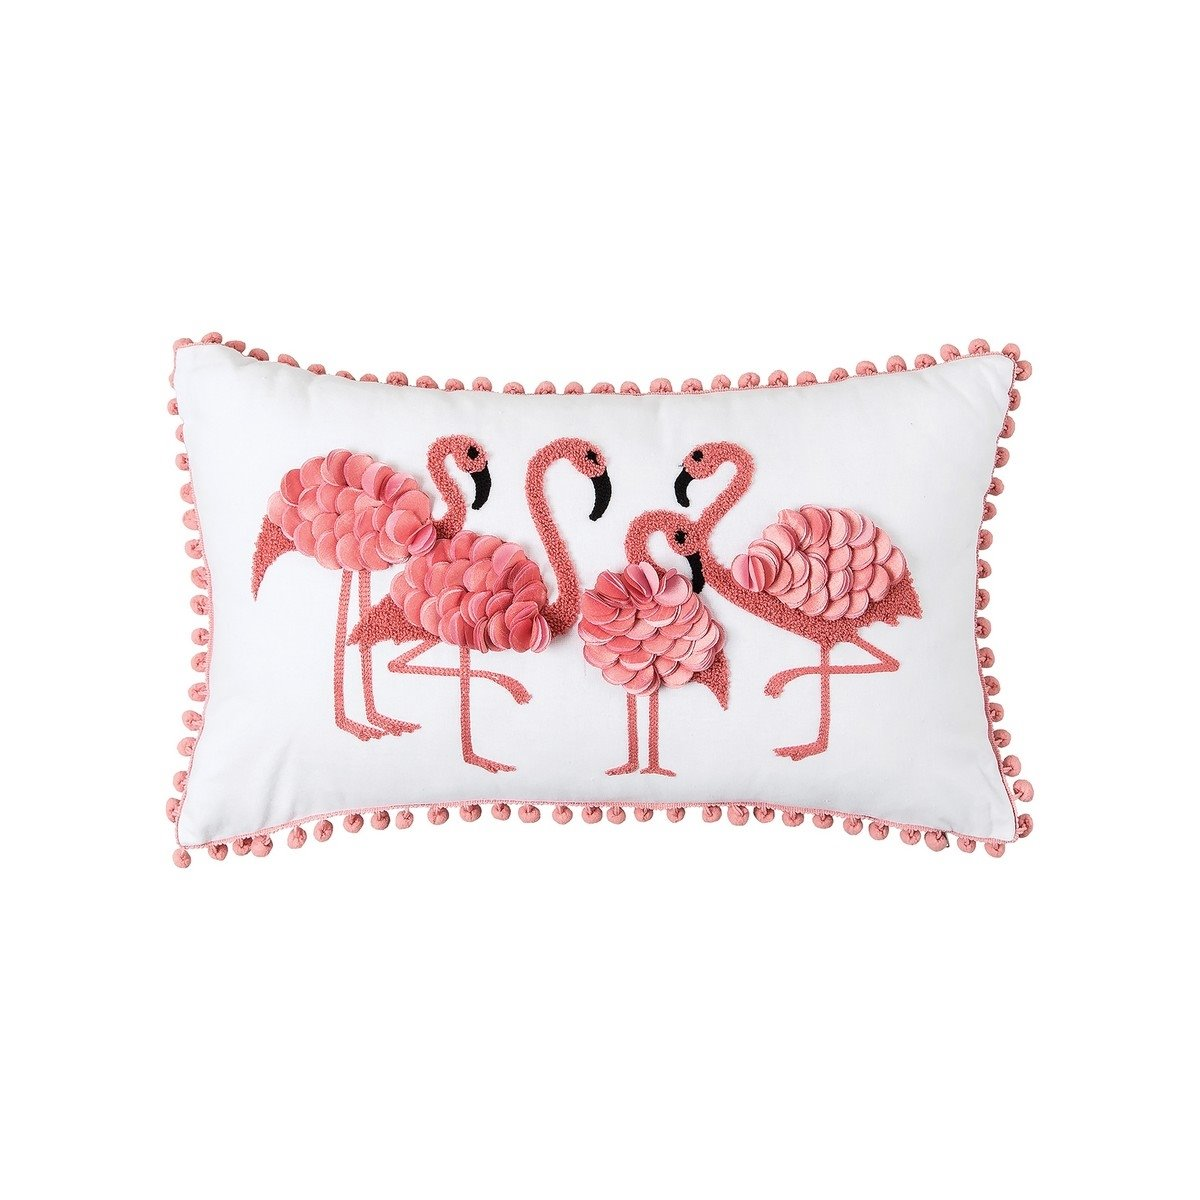 Embellished Flamingo Pillow with Pom Poms